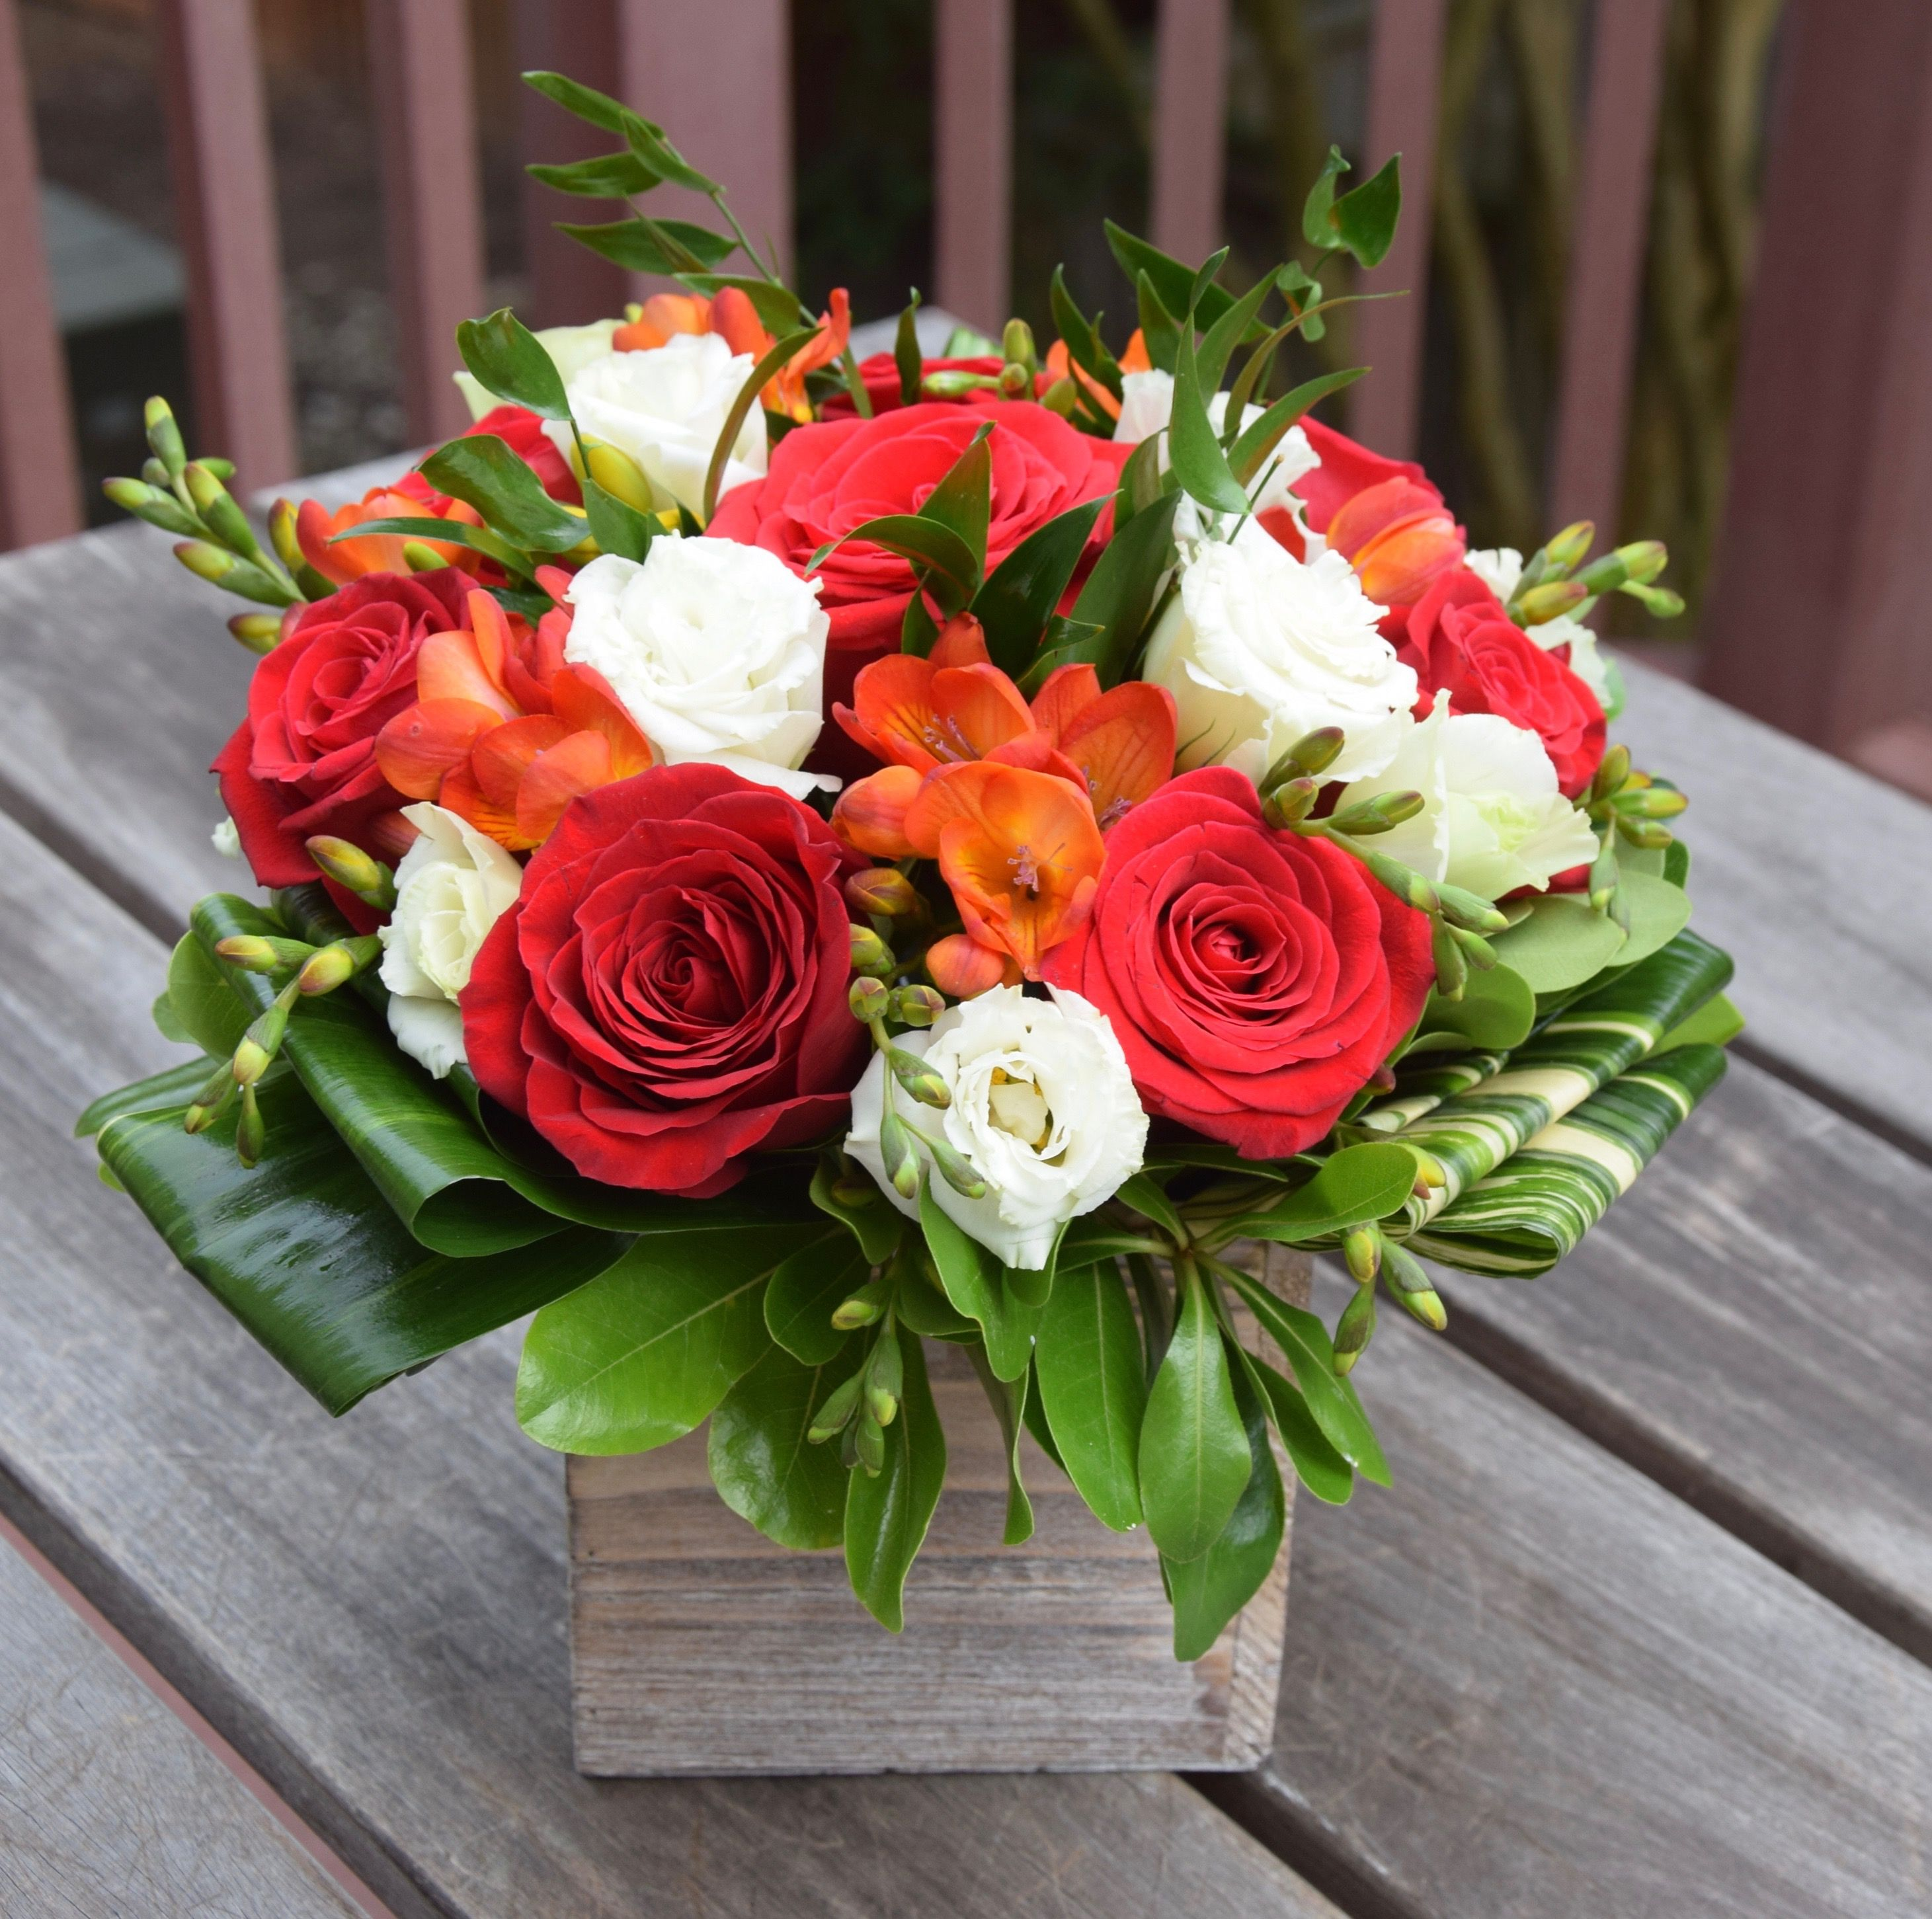 Flower box with roses lisianthus freesia and green fillers a fleurelity florist customized flower arrangements and flower delivery local florist izmirmasajfo Choice Image